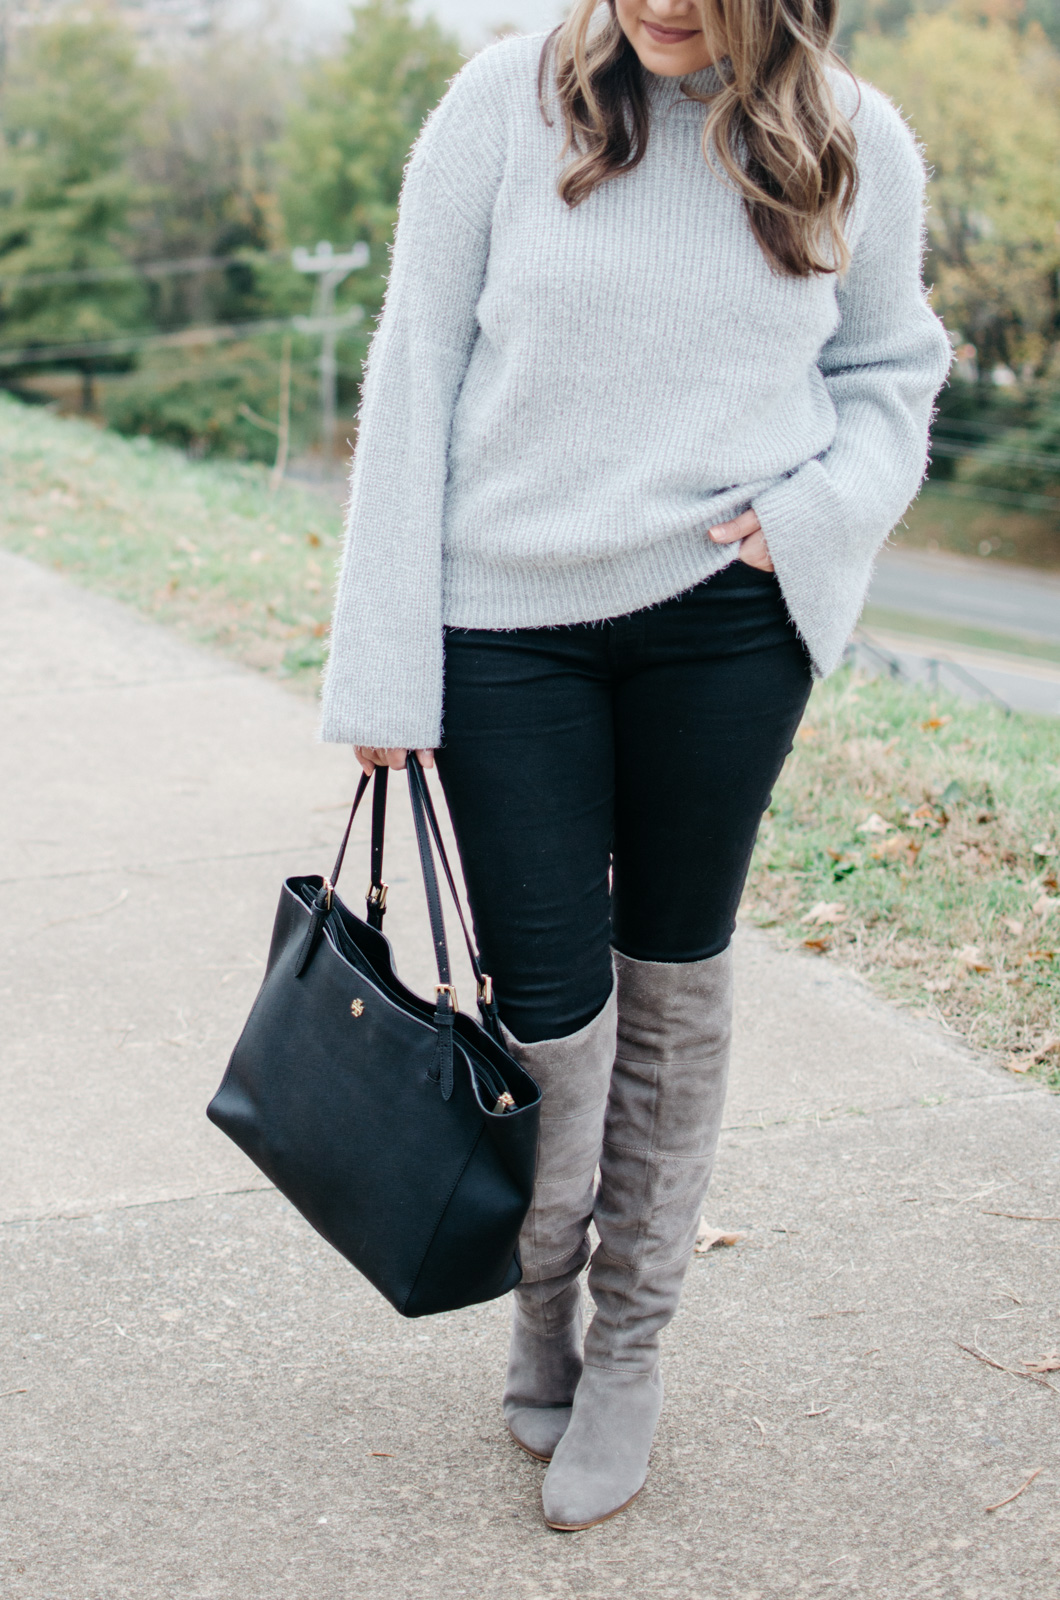 eyelash sweater - gray bell sleeve sweater outfit | Get more Winter outfit ideas at bylaurenm.com!